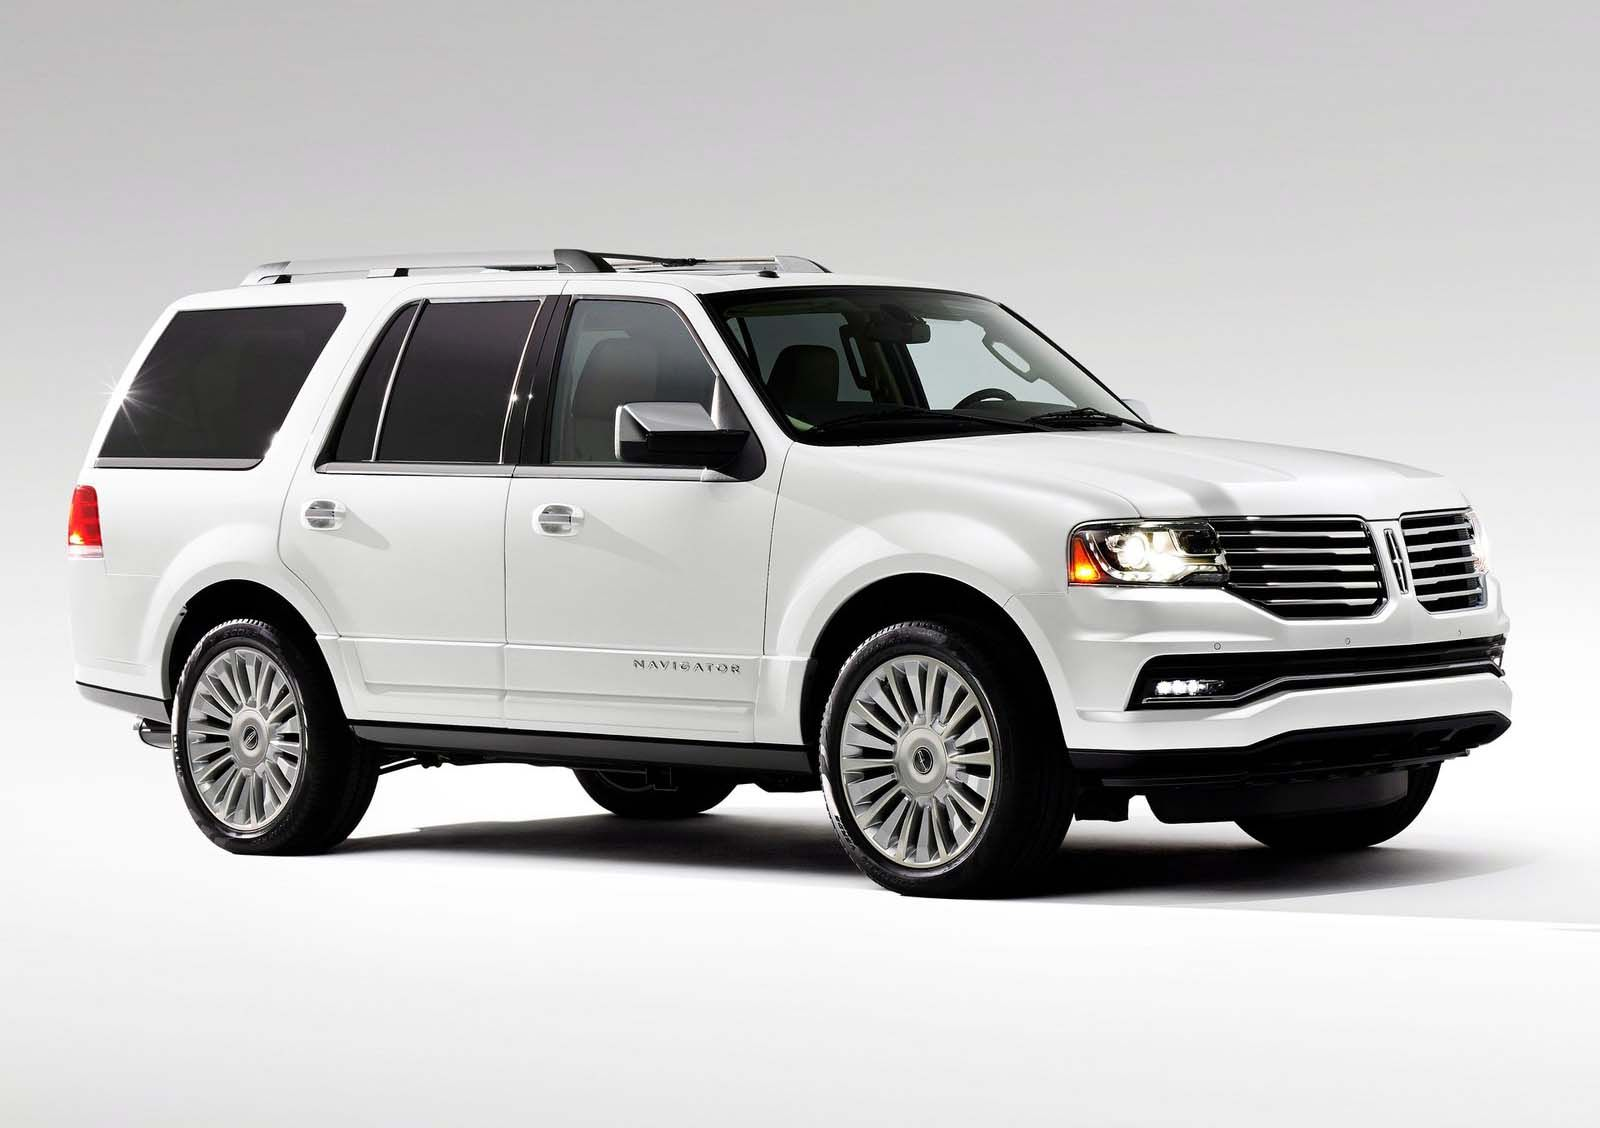 Awesome 2015 lincoln navigator